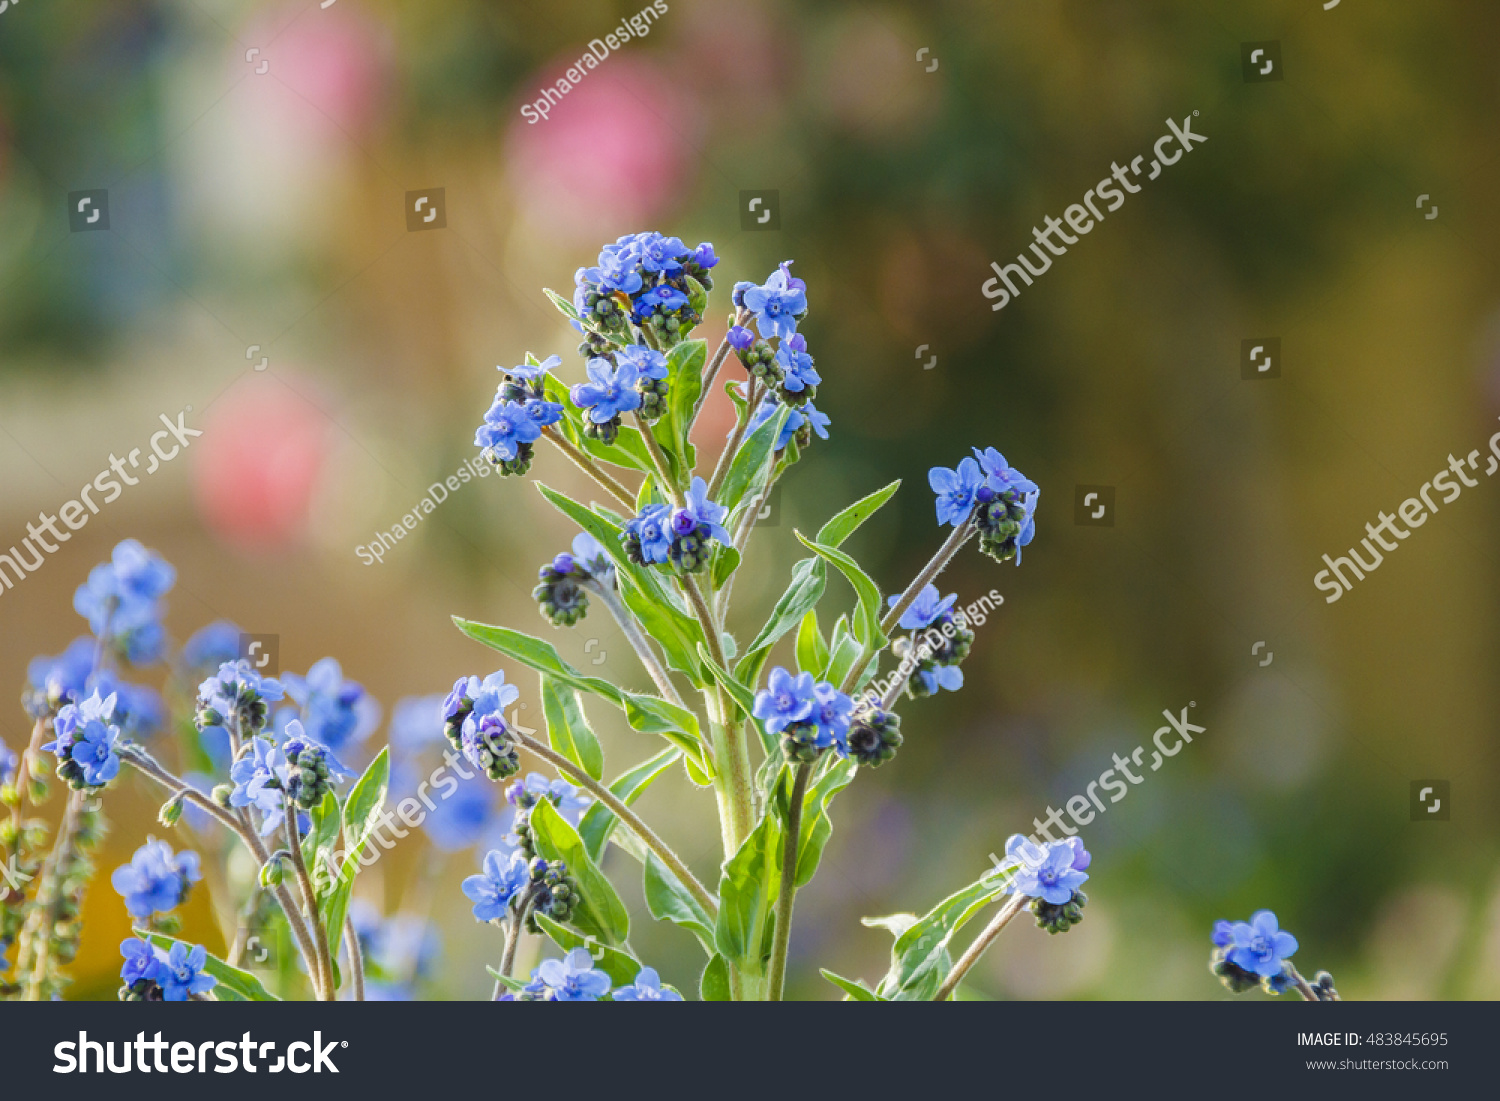 Small blue flower details with granular cluster buds ez canvas id 483845695 izmirmasajfo